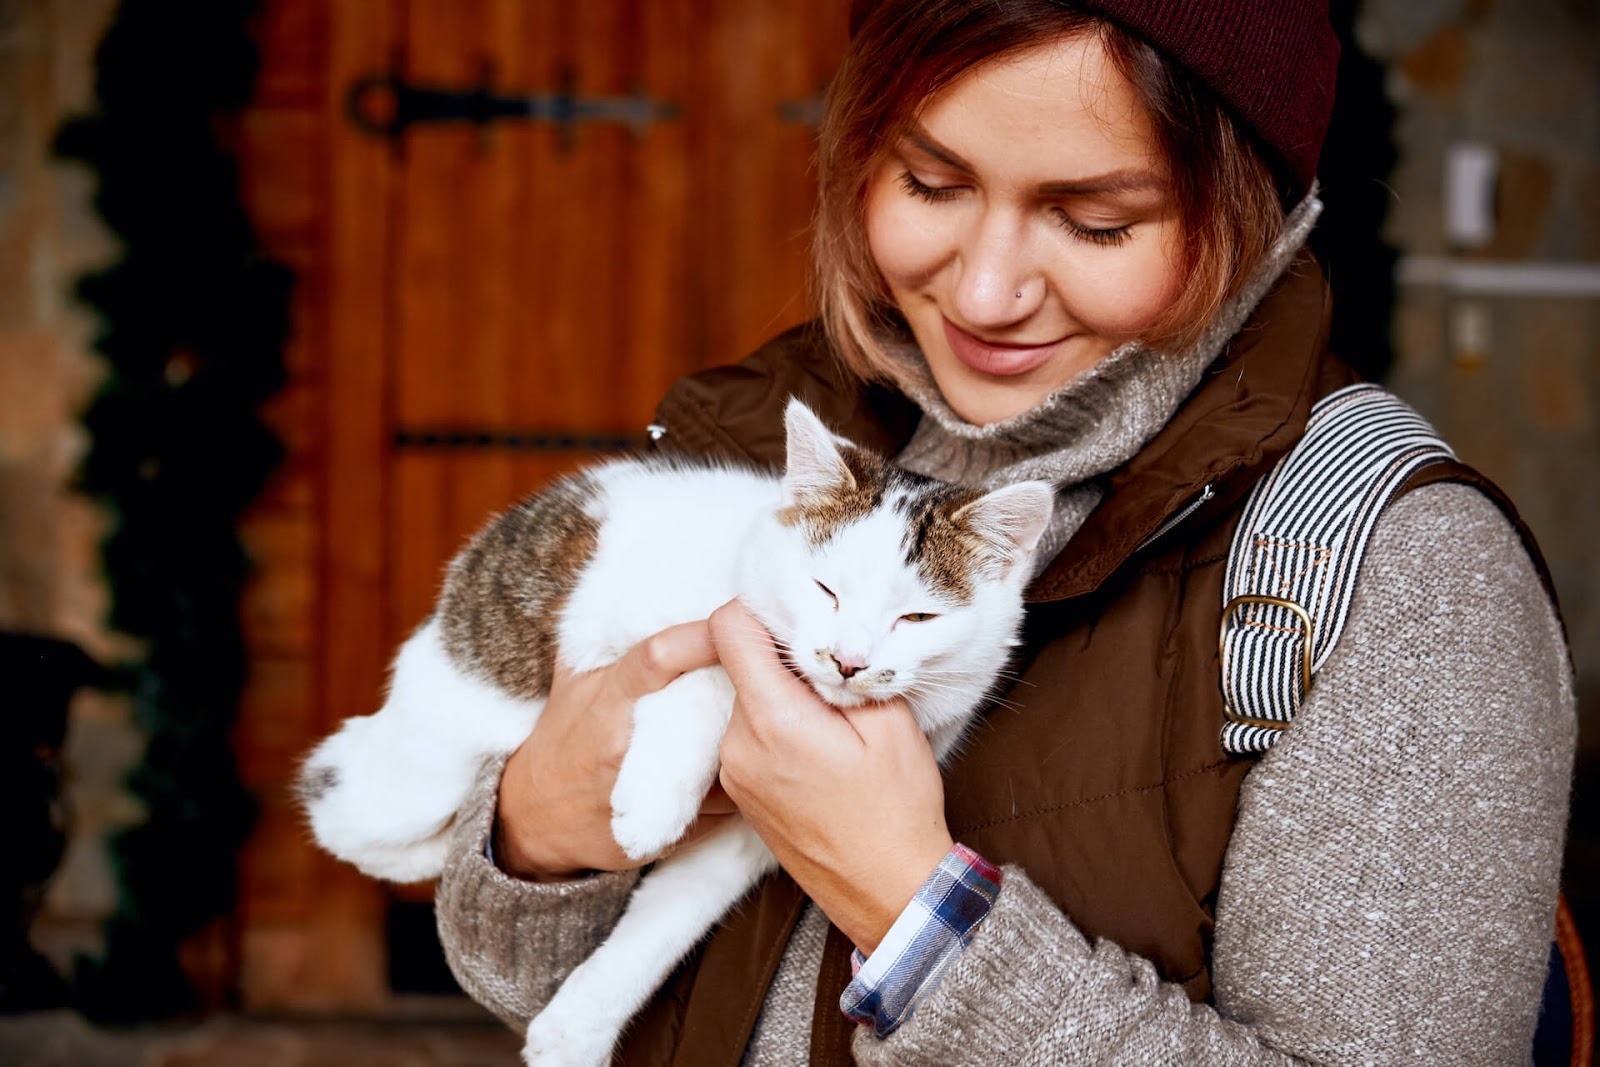 Woman volunteering and cuddling cats